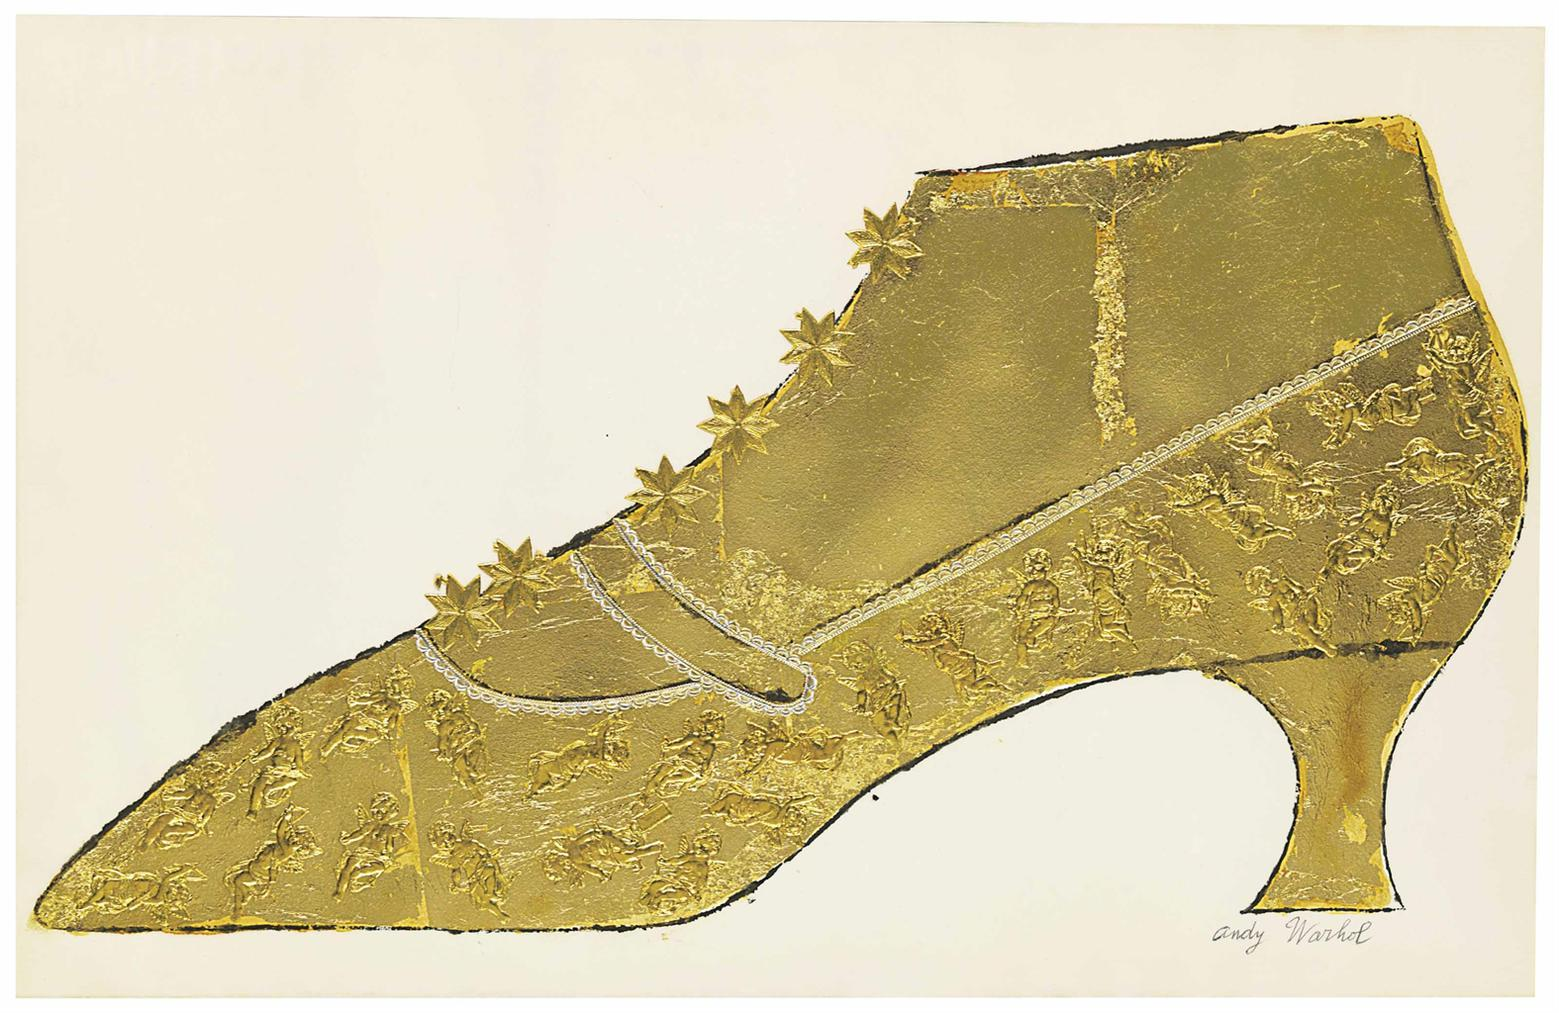 Andy Warhol-Large Gold Shoe-1950